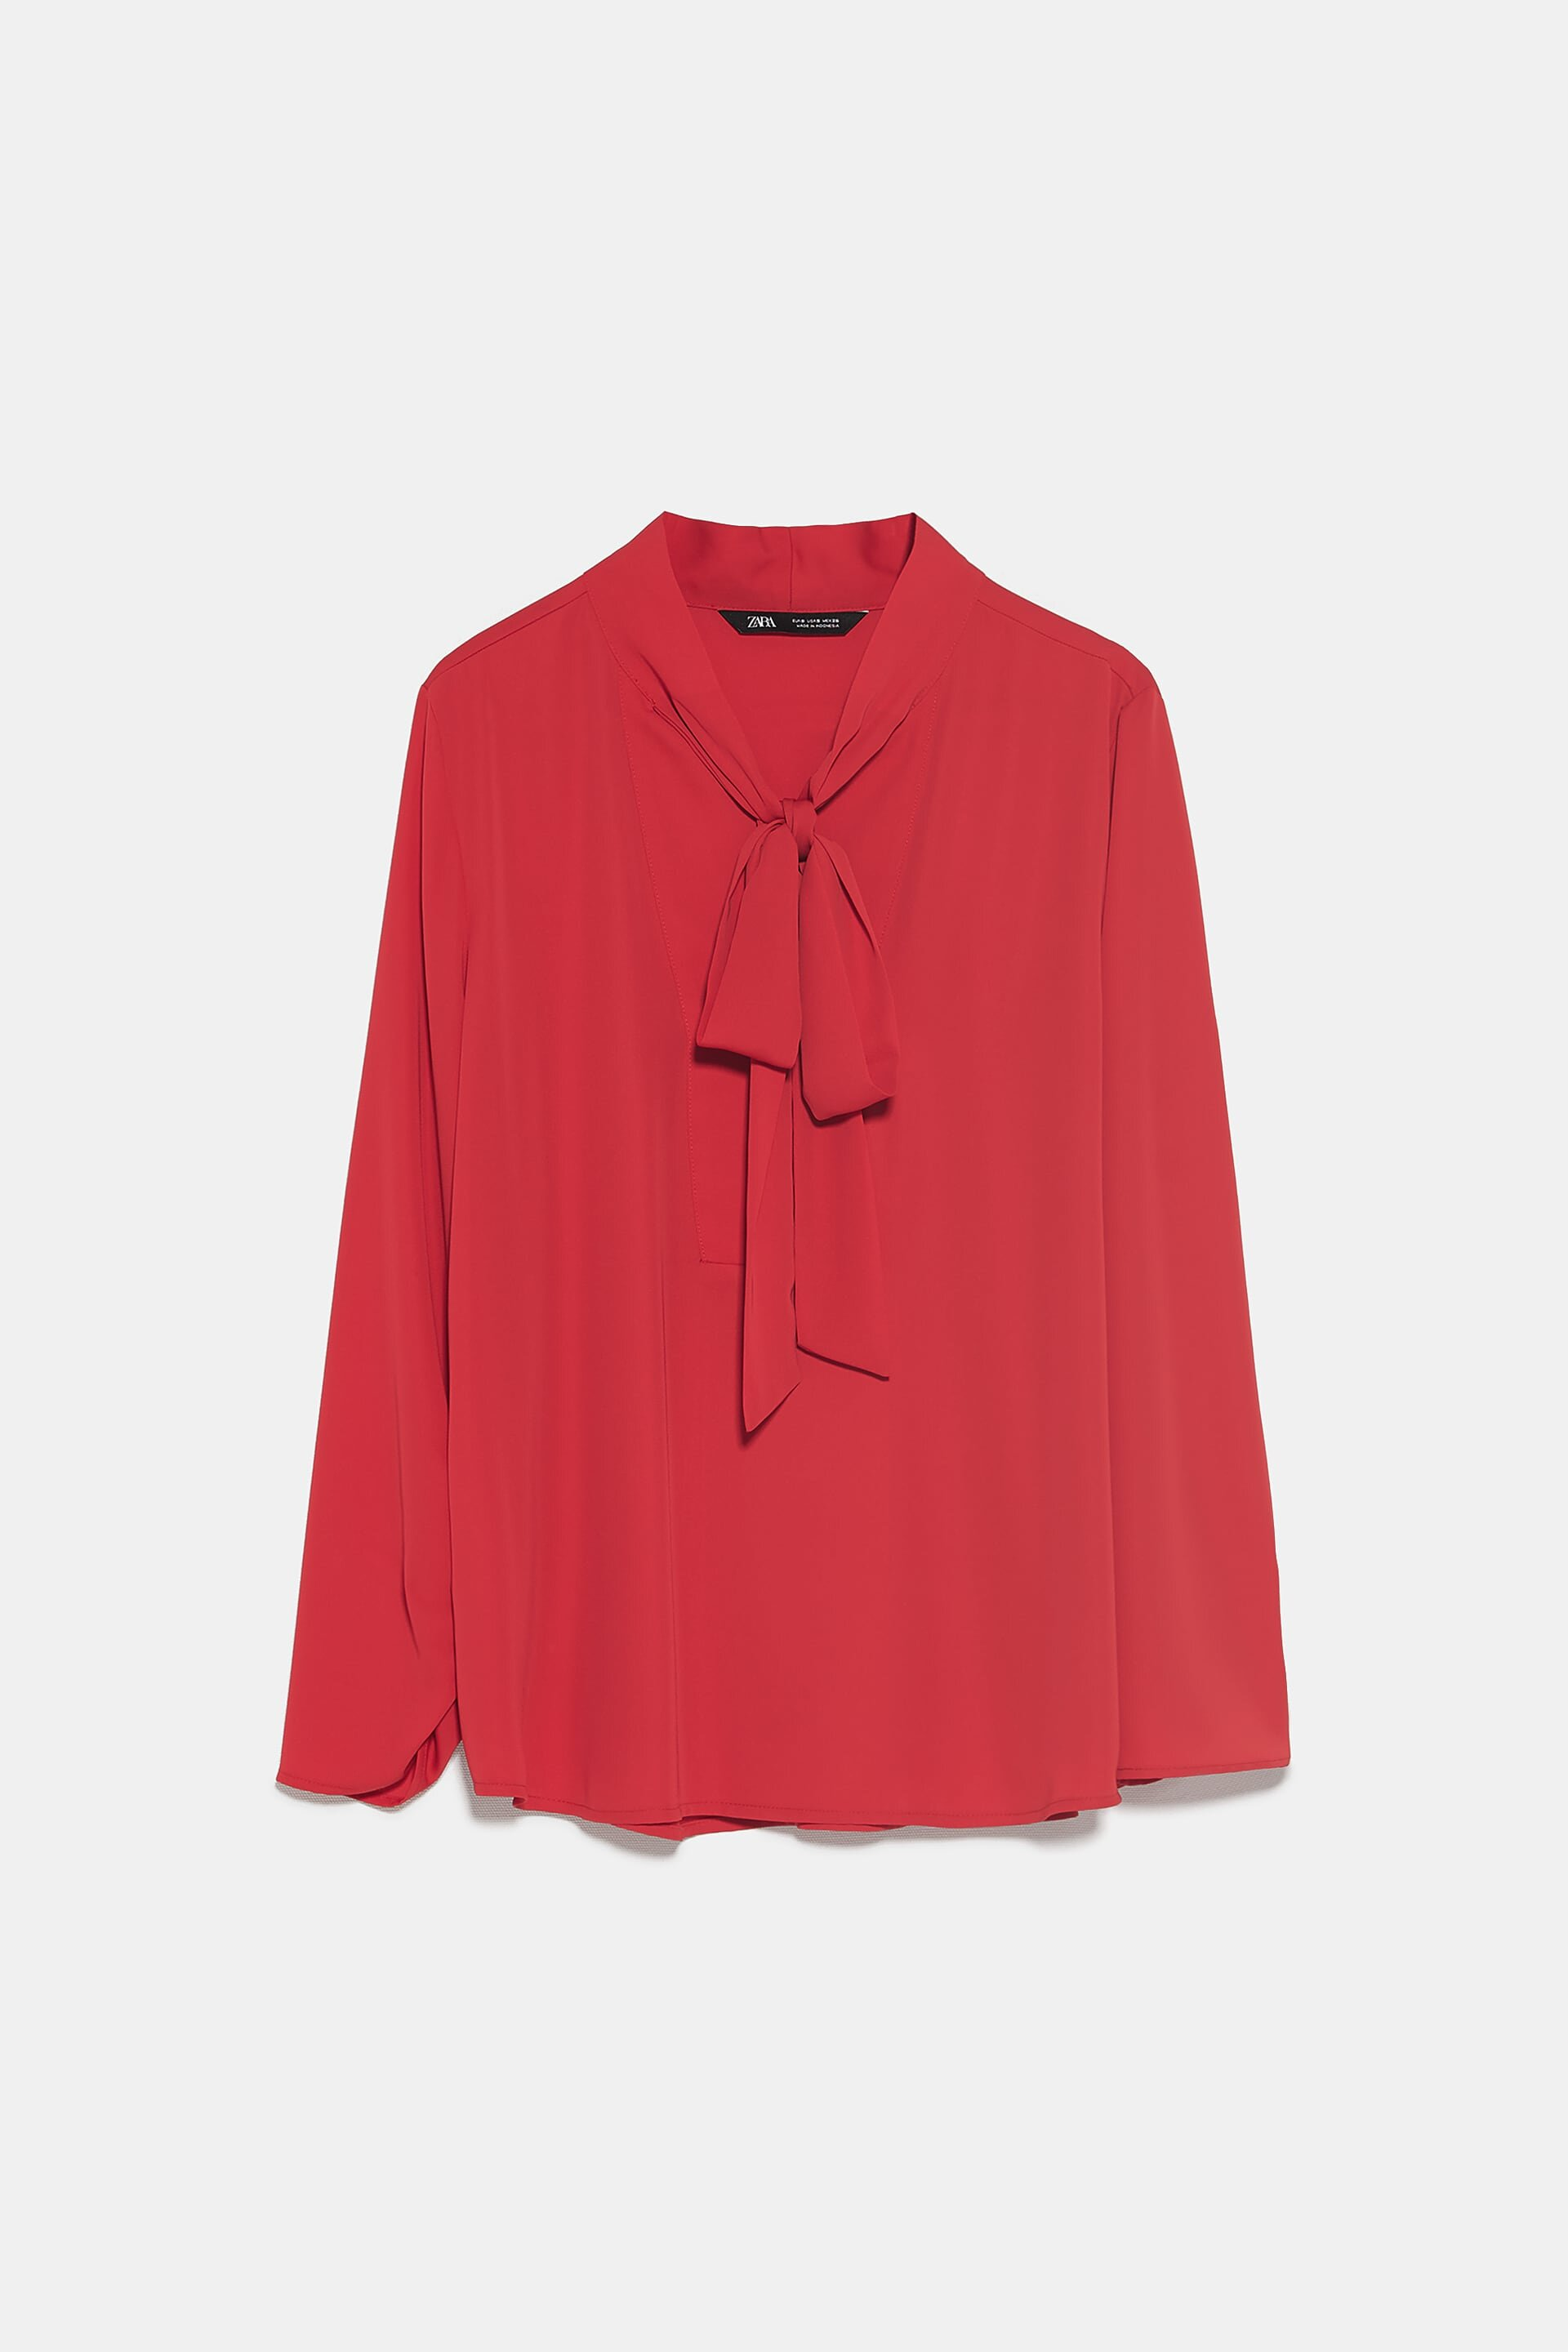 Zara Red Bow Blouse